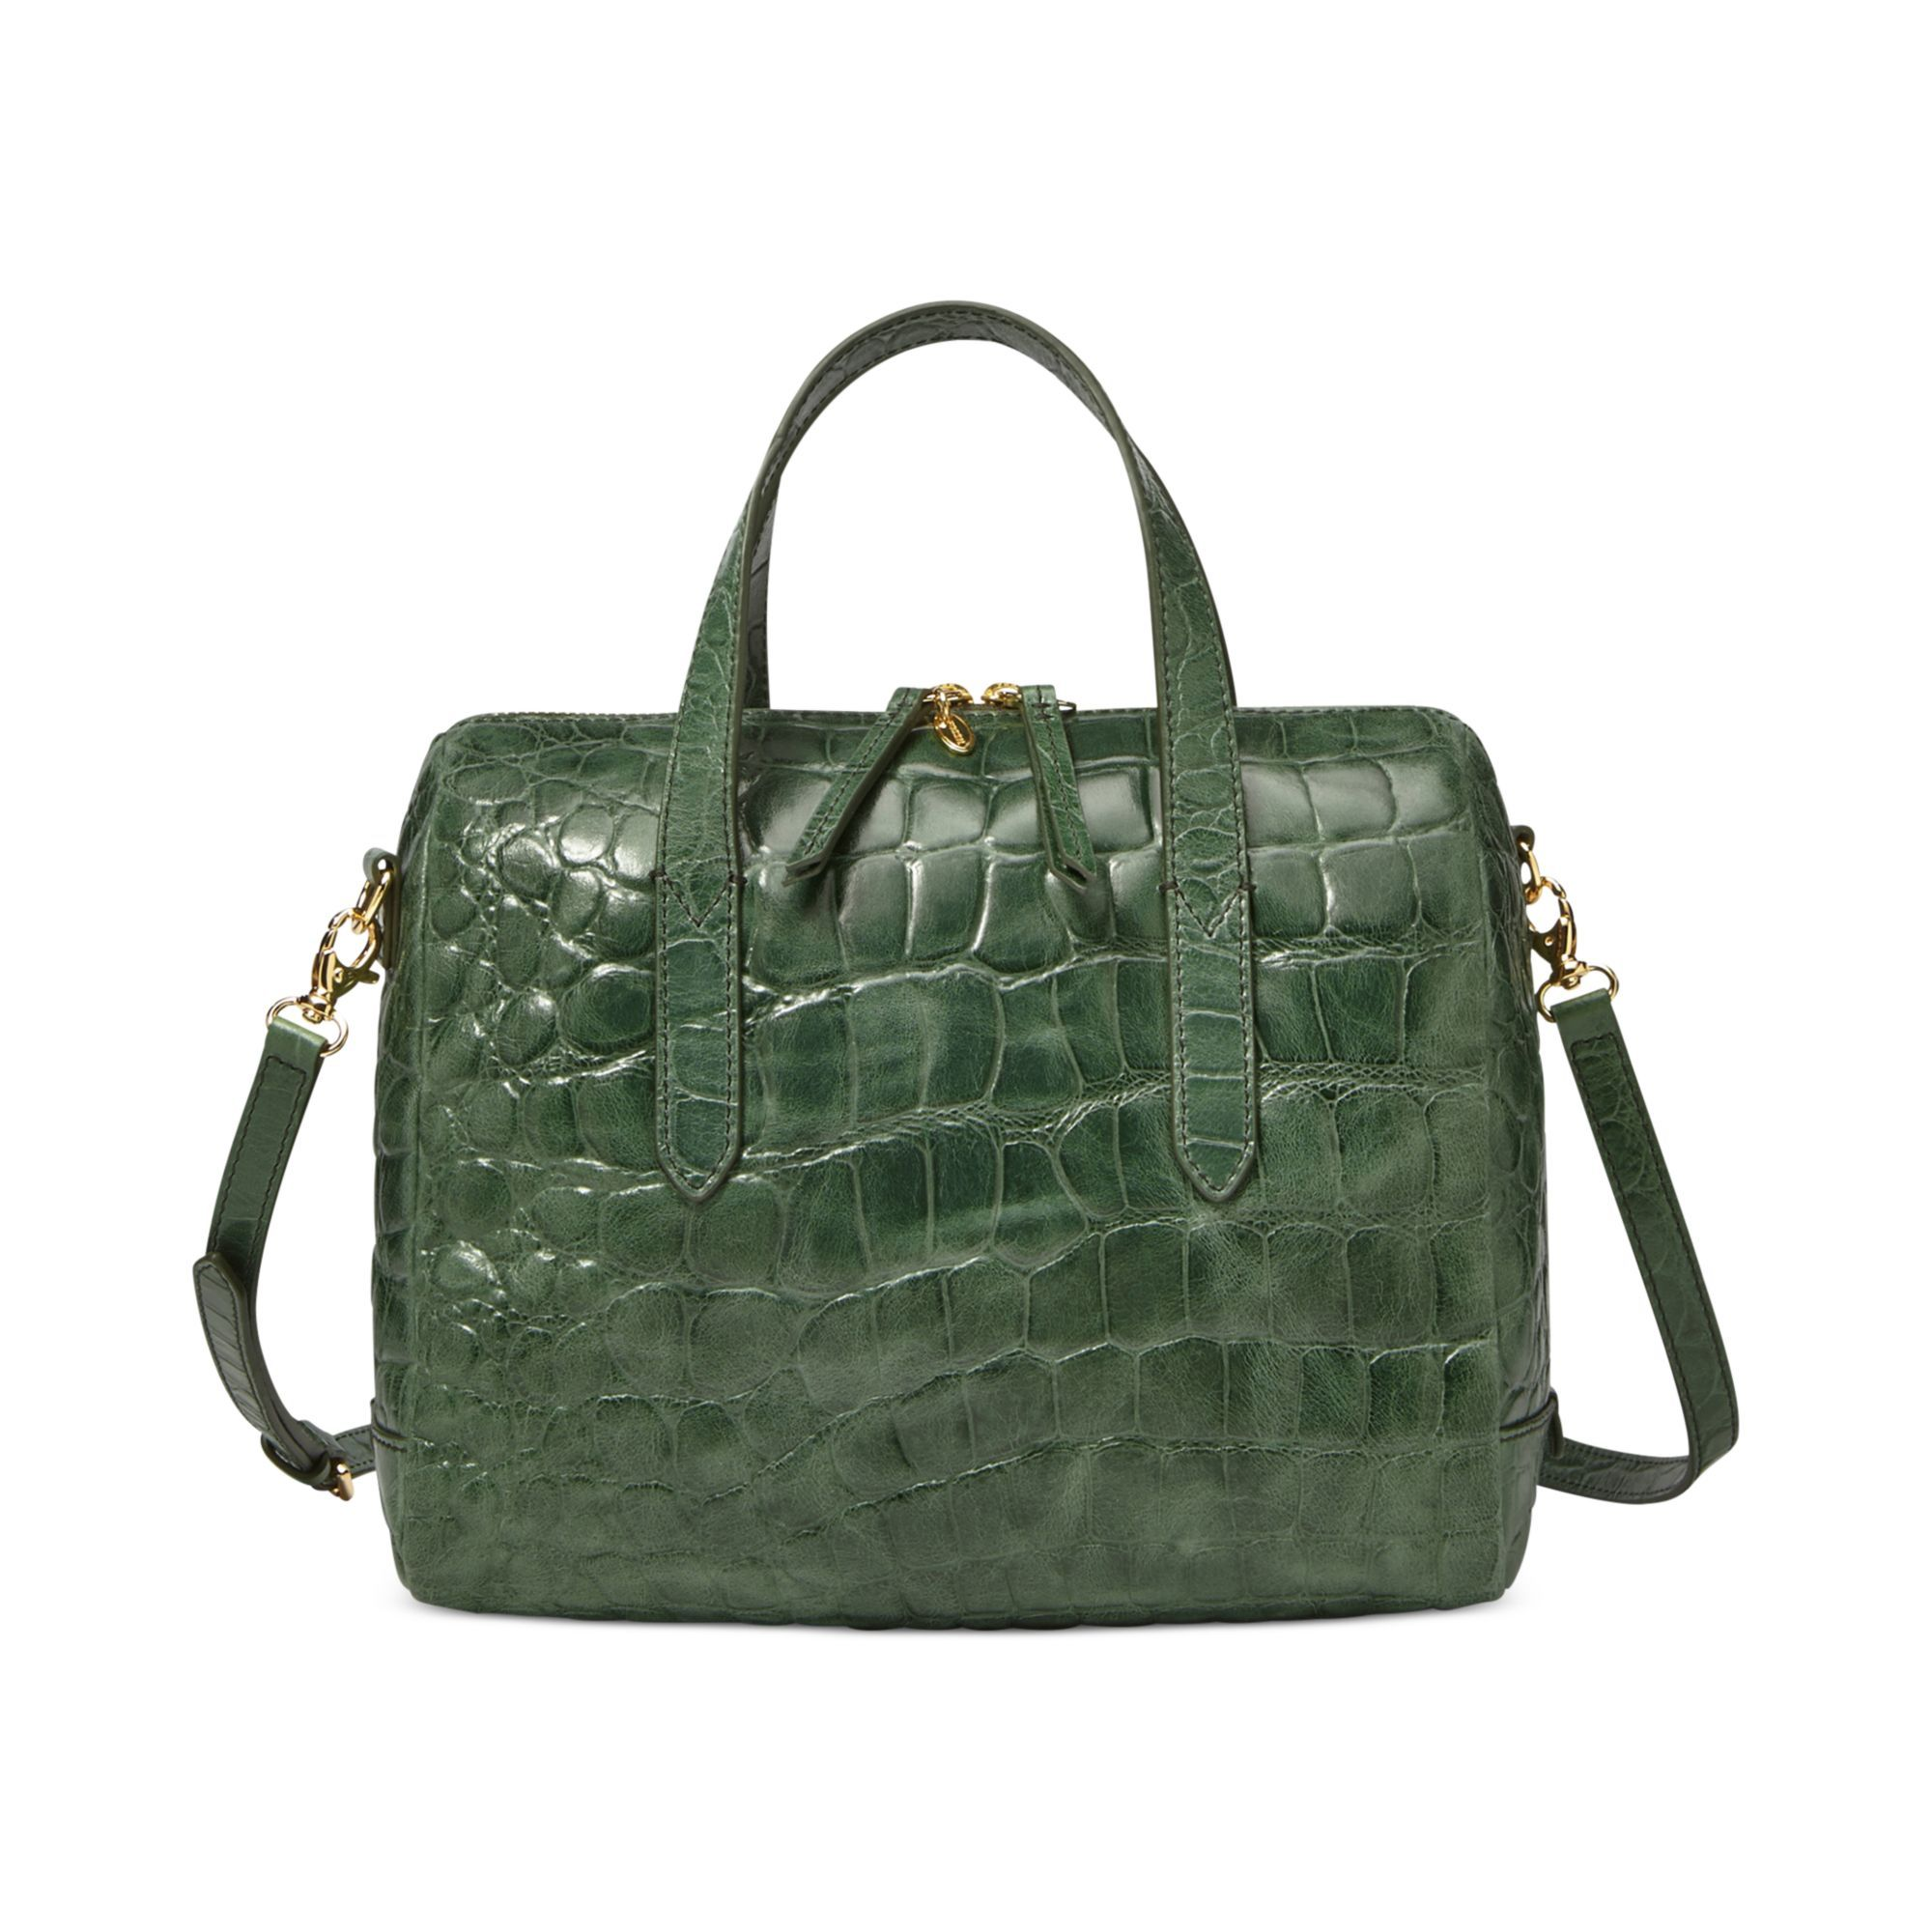 895cff408a8b Fossil leather Sydney Satchel in embossed green crocodile. It has a perfect  vintage bowling bag shape.